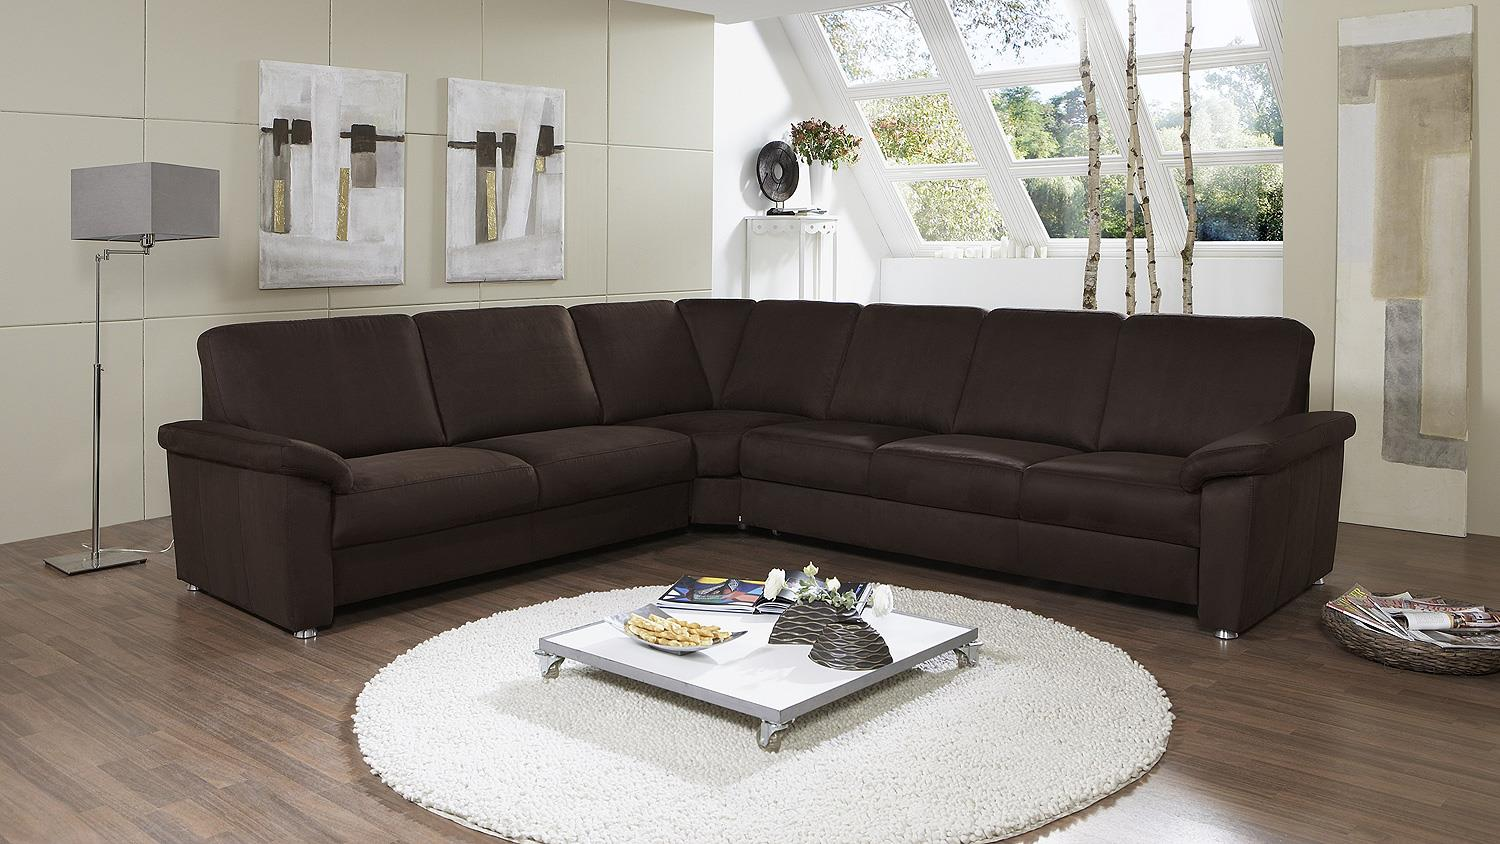 Ecksofa triest sofa wohnlandschaft in nougat braun 240x298 for Ecksofa 240 x 160